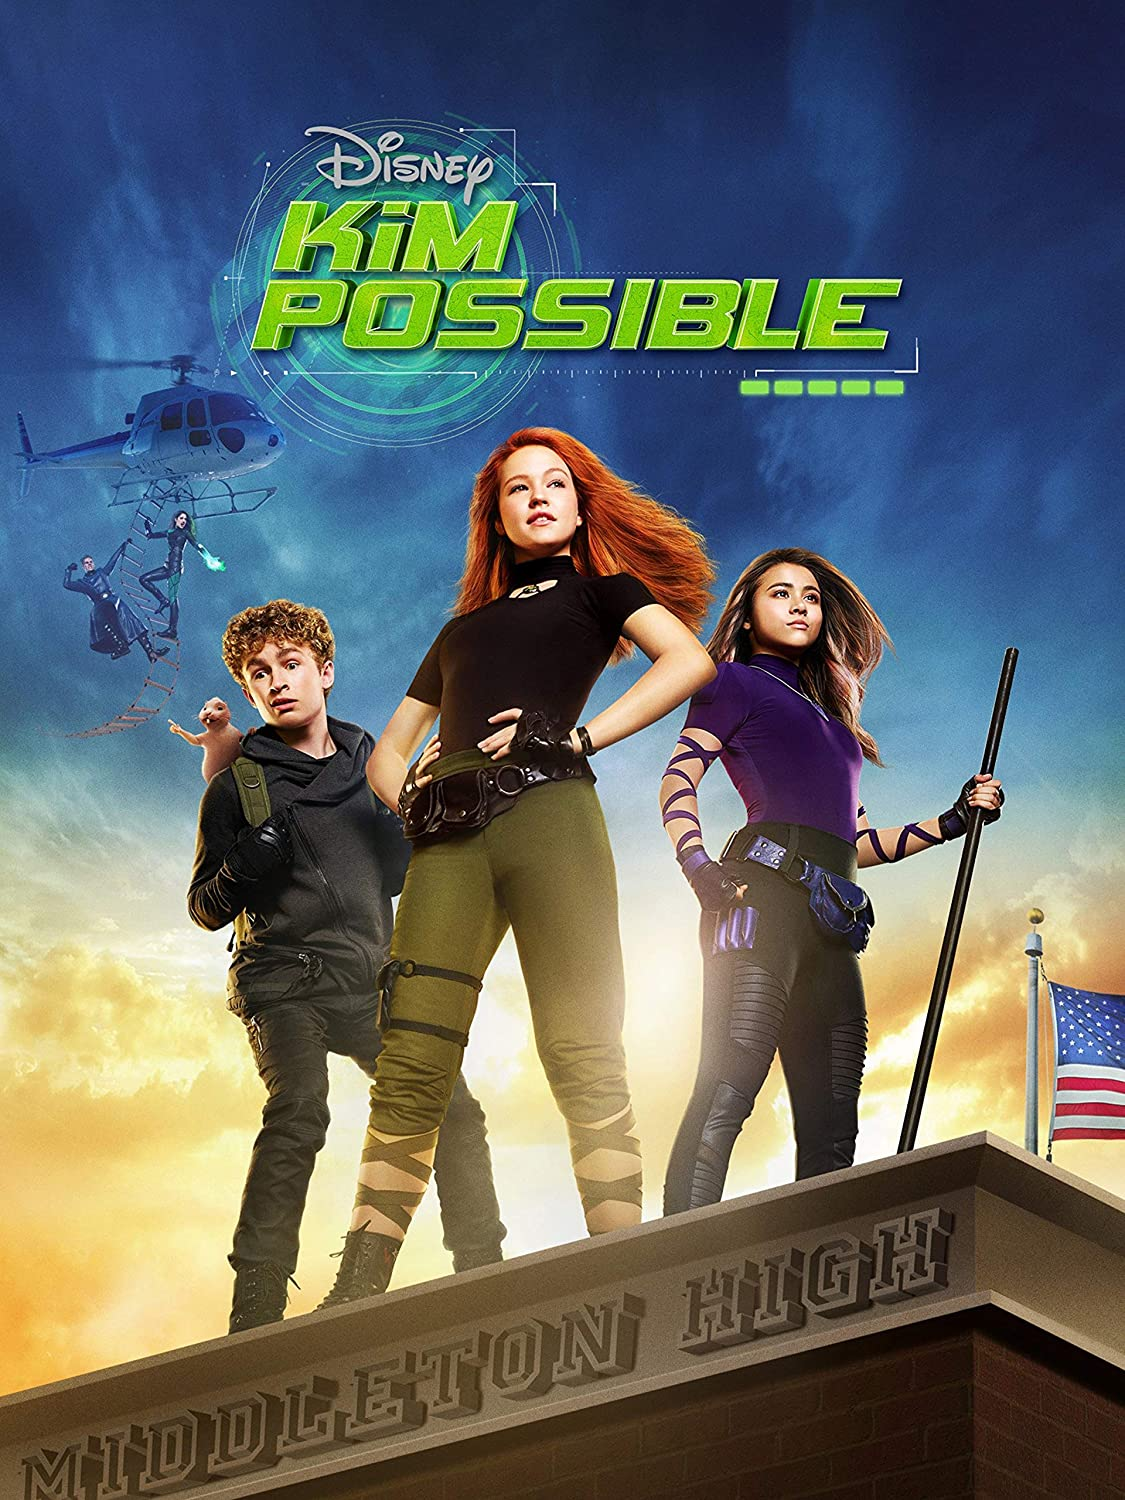 Kim Possible TV Series Poster Glossy Finish TVS817 Posters USA